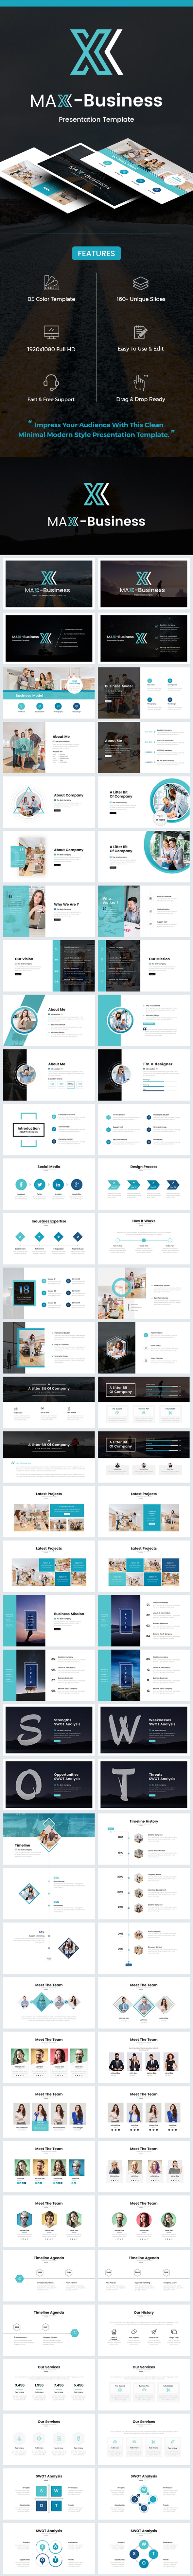 Business Powerpoint Template 2018 - PowerPoint Templates Presentation Templates